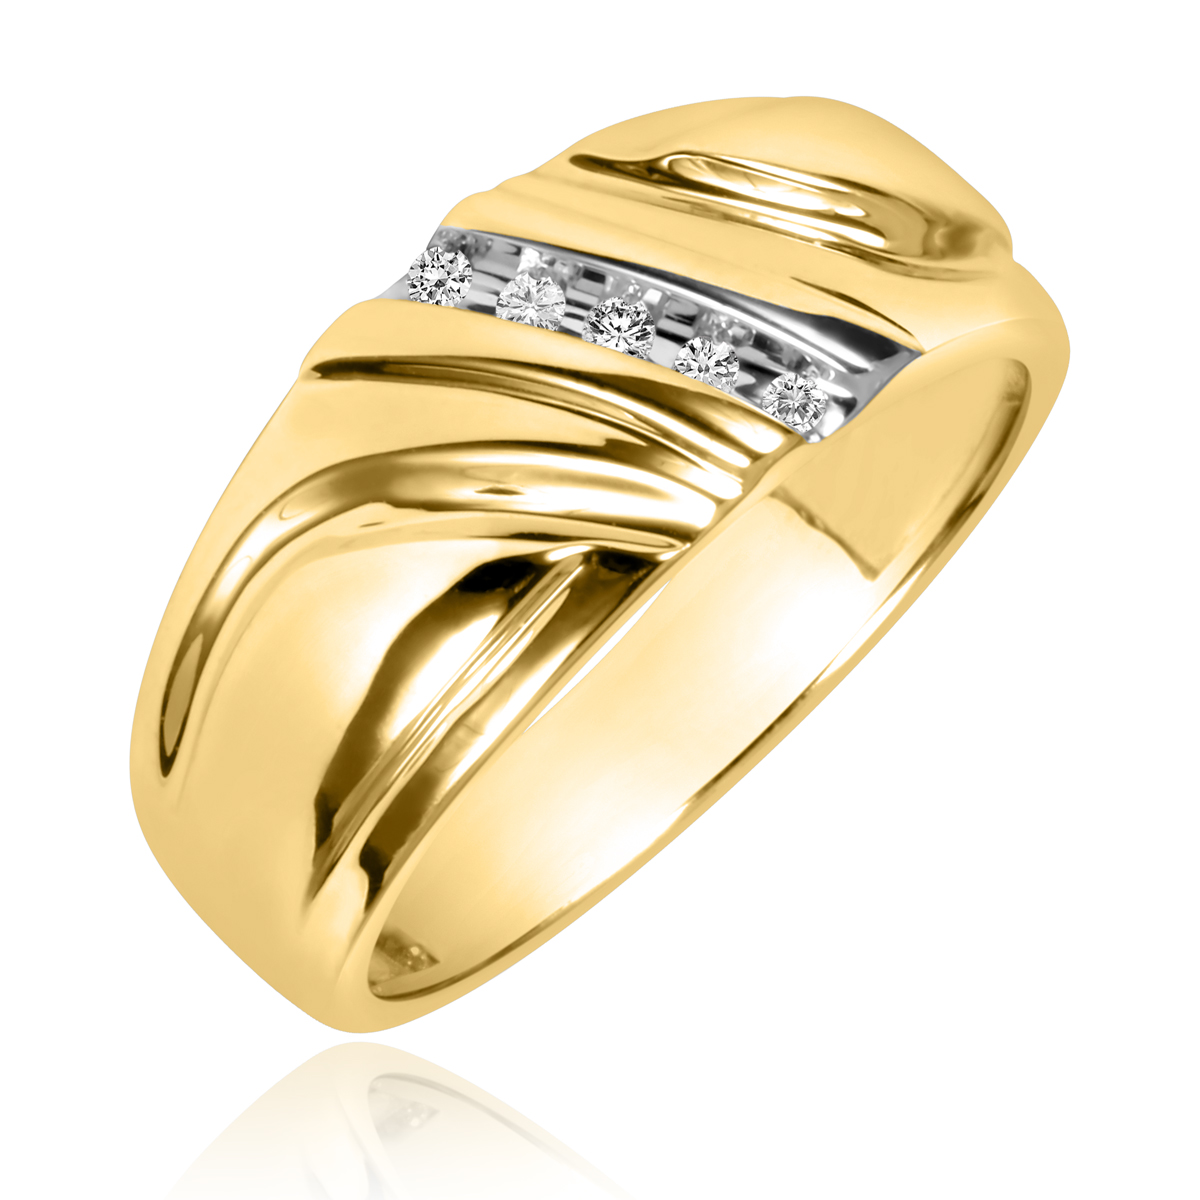 1/15 Carat T.W. Round Cut Diamond Men's Wedding Band 14K Yellow Gold- Size 8